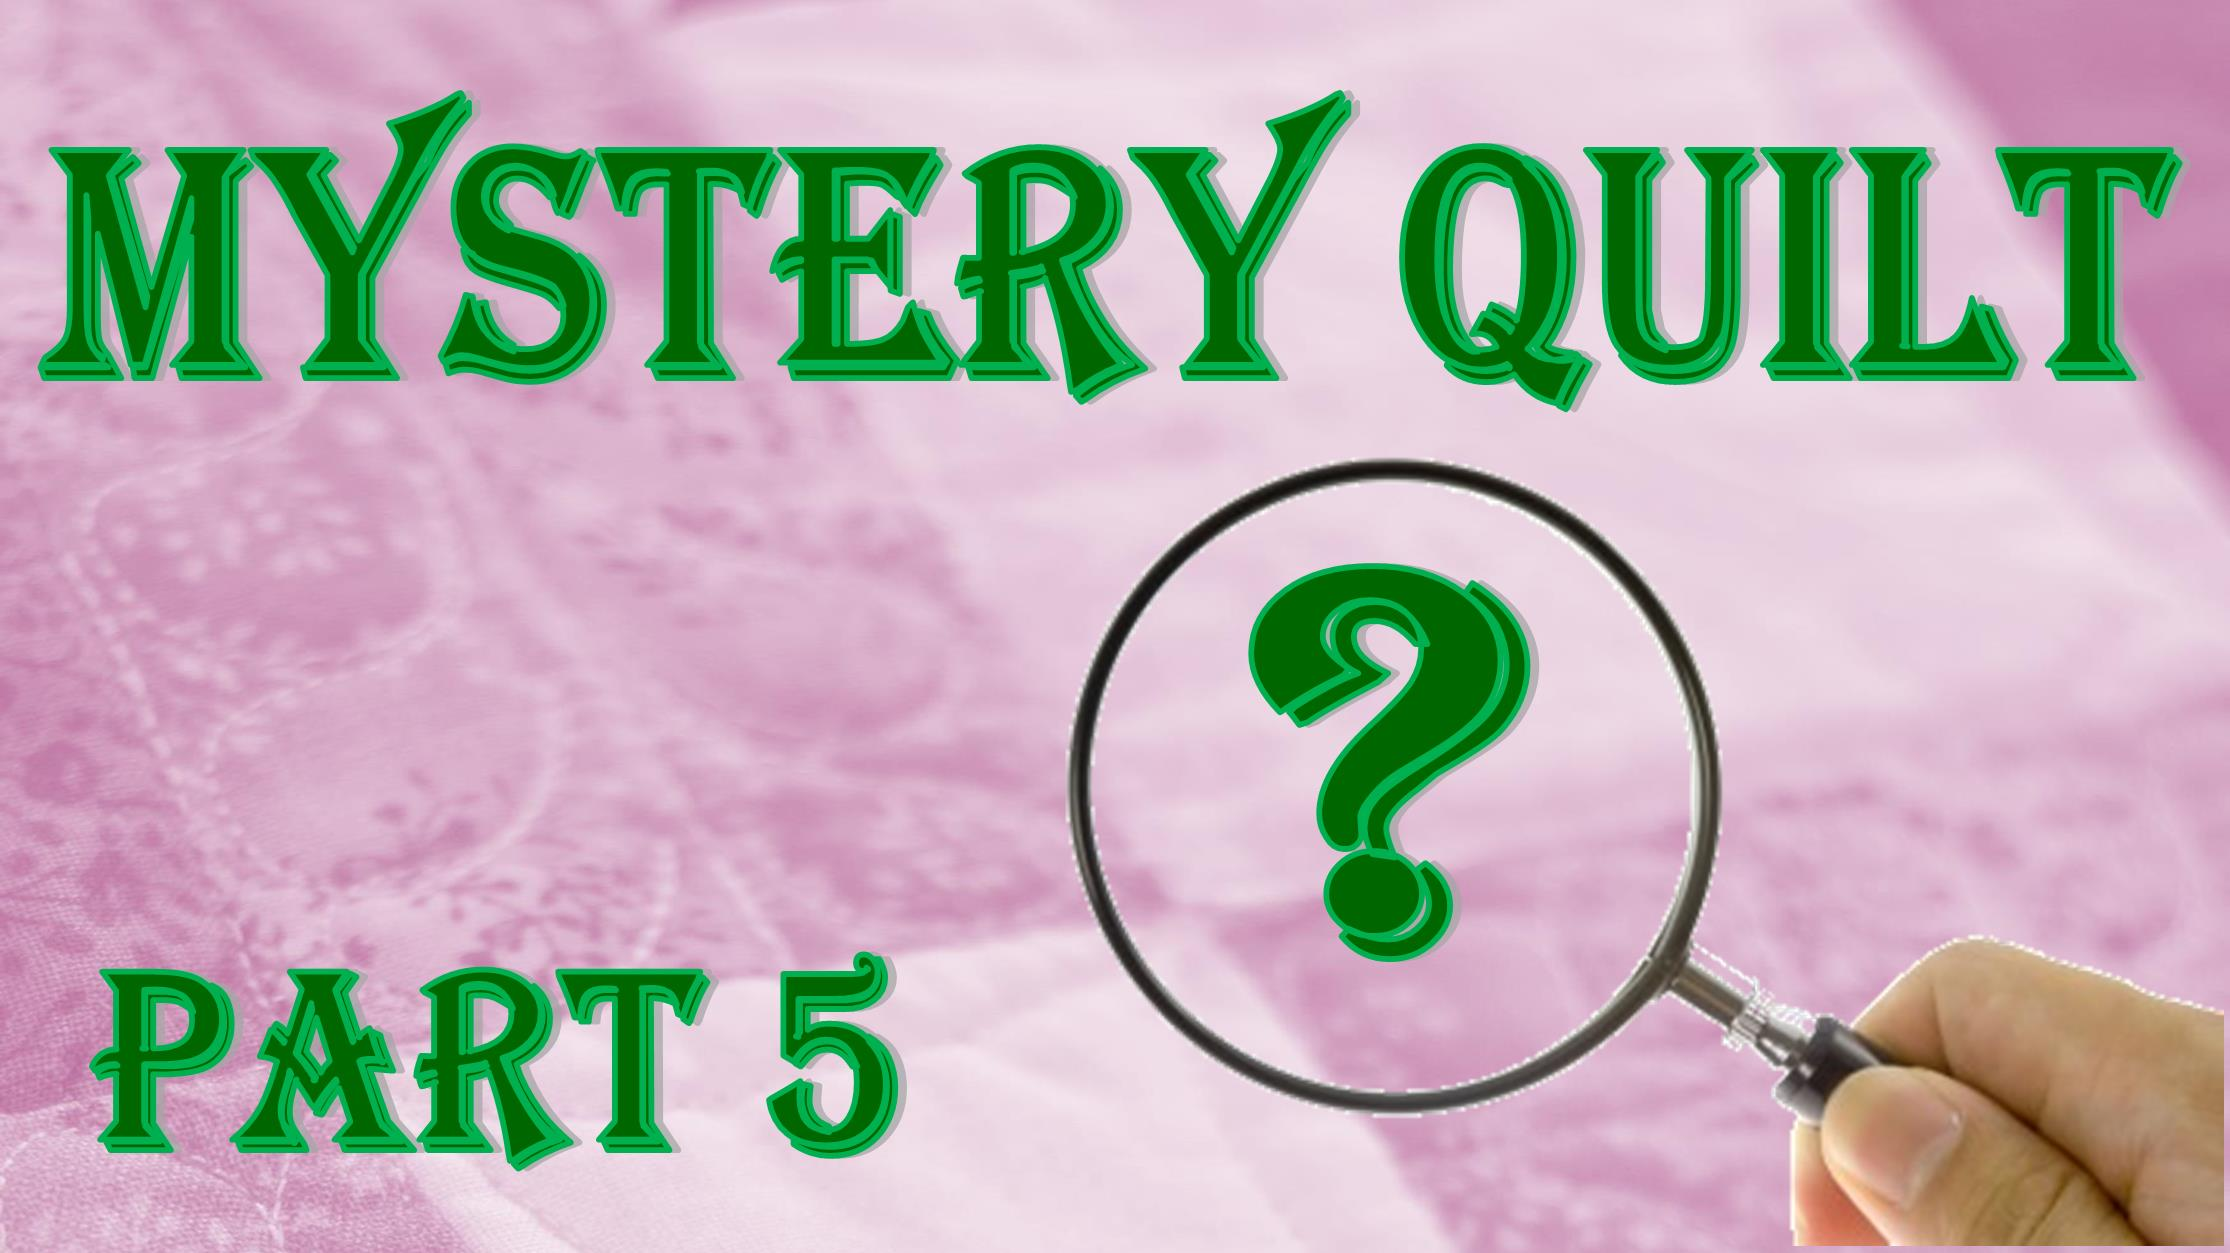 Mystery Quilt - Part 5